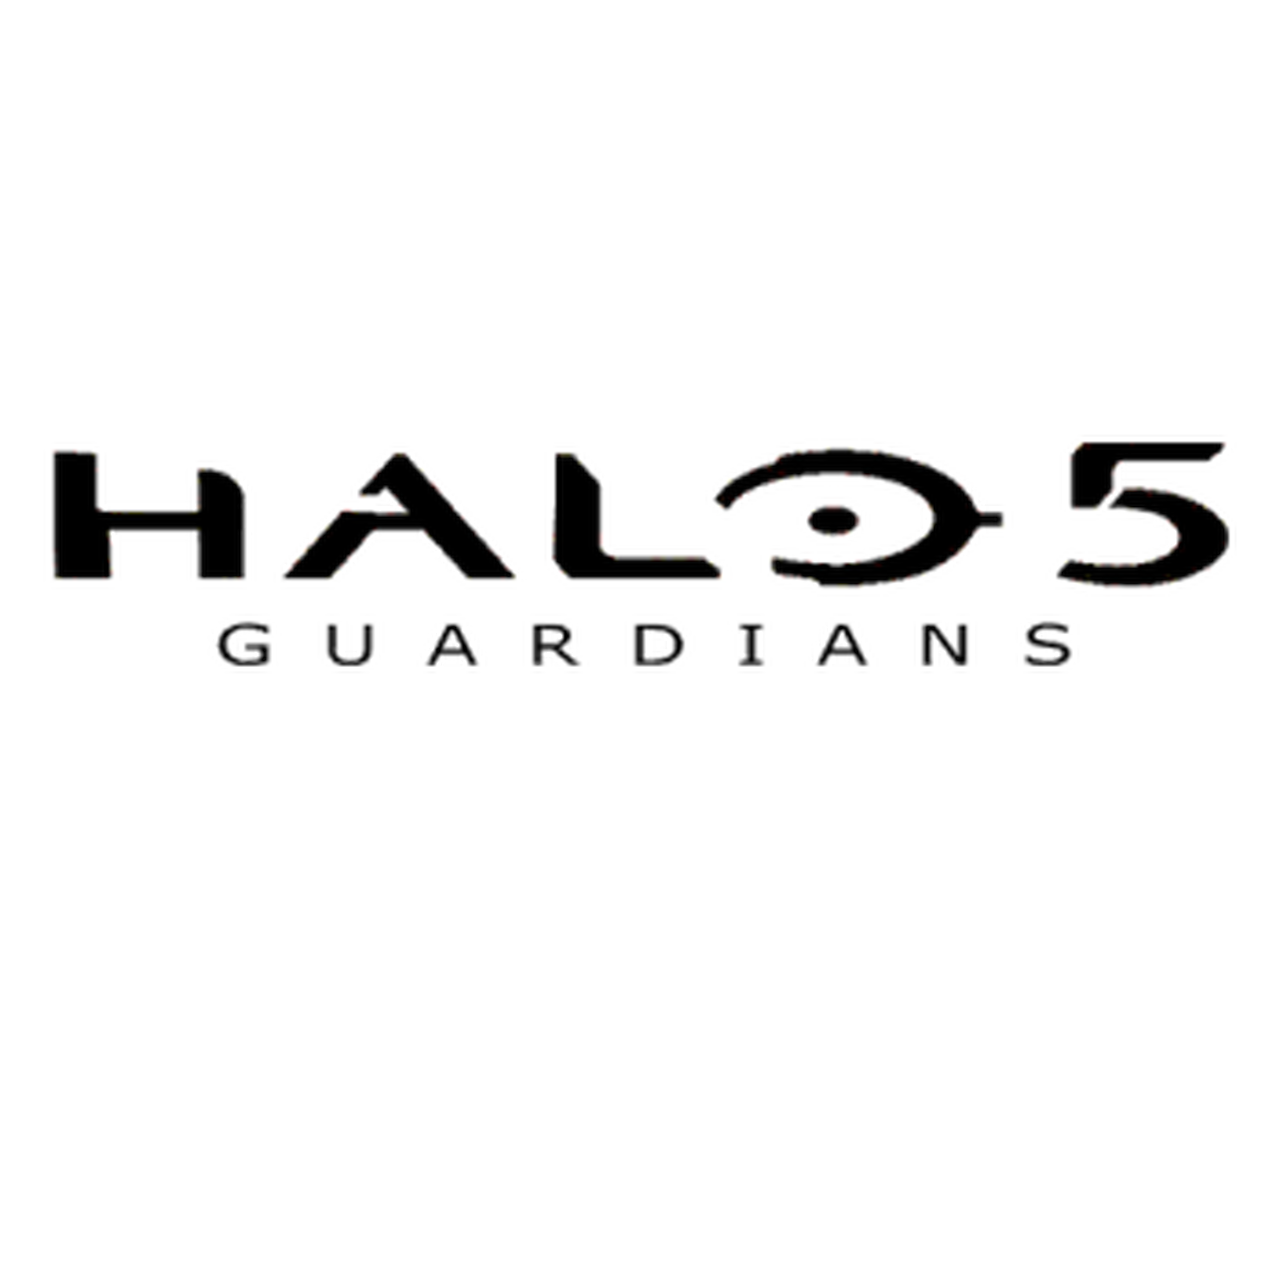 Halo 5 Guardians Logo Decal.